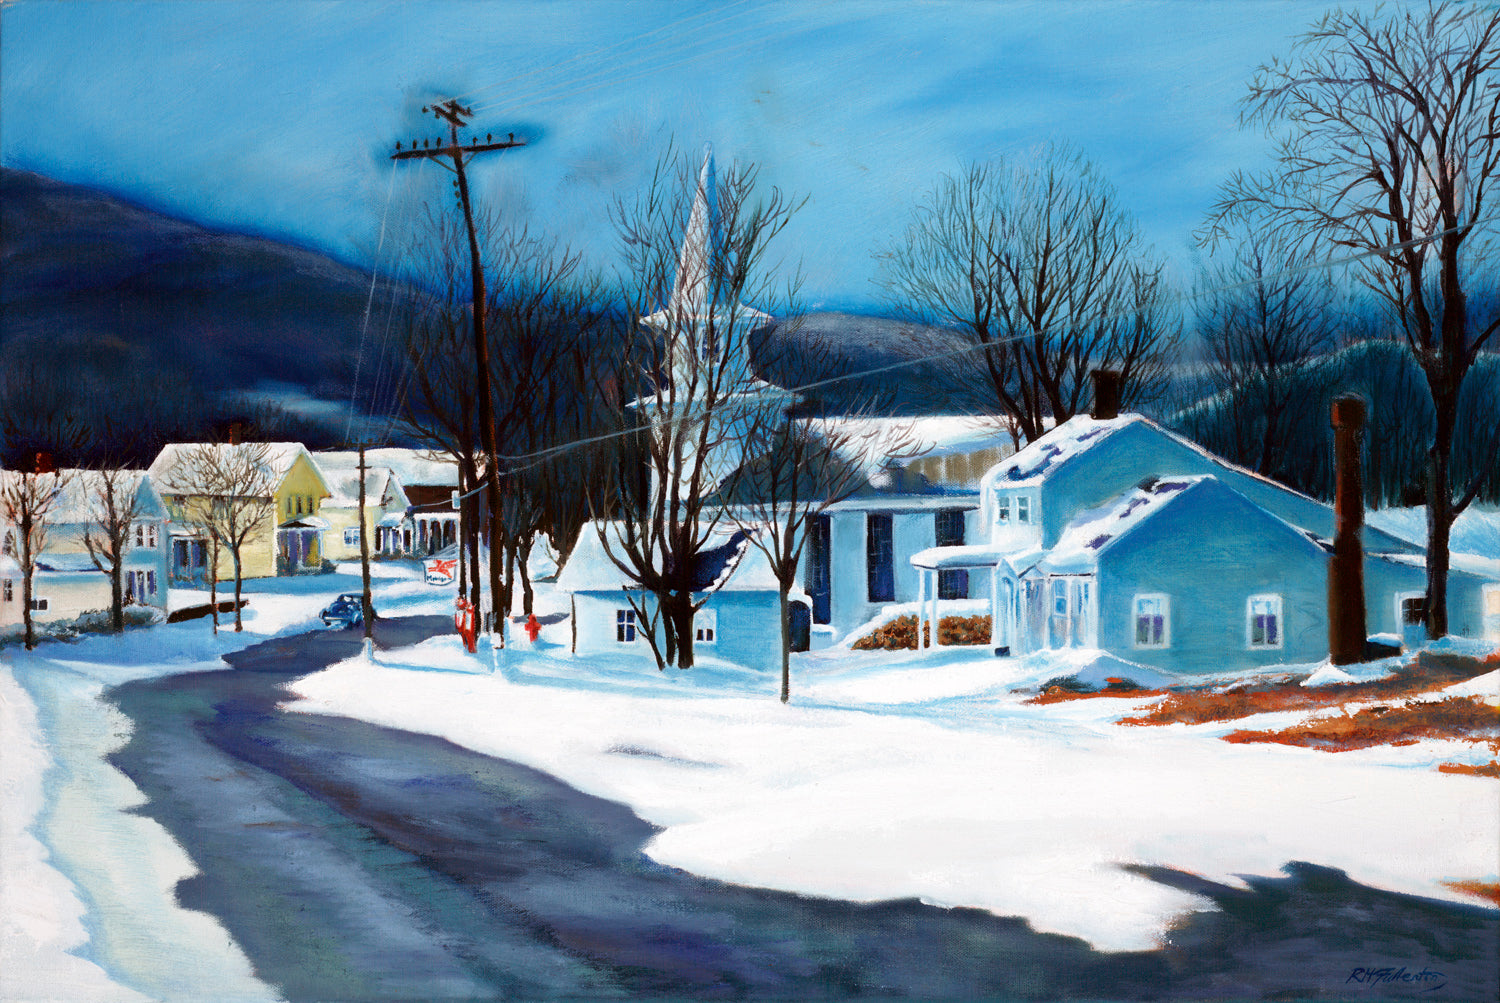 """January Thaw"" is a 20 by 30 inch oil on canvas painting by Rebecca M. Fullerton, depicting a classic northeastern village in winter. A road runs down into the town where clapboard houses flank a white church with its steeple. Signs of a warm spell are evident as patches of bare ground show up and the paved road is melting out."